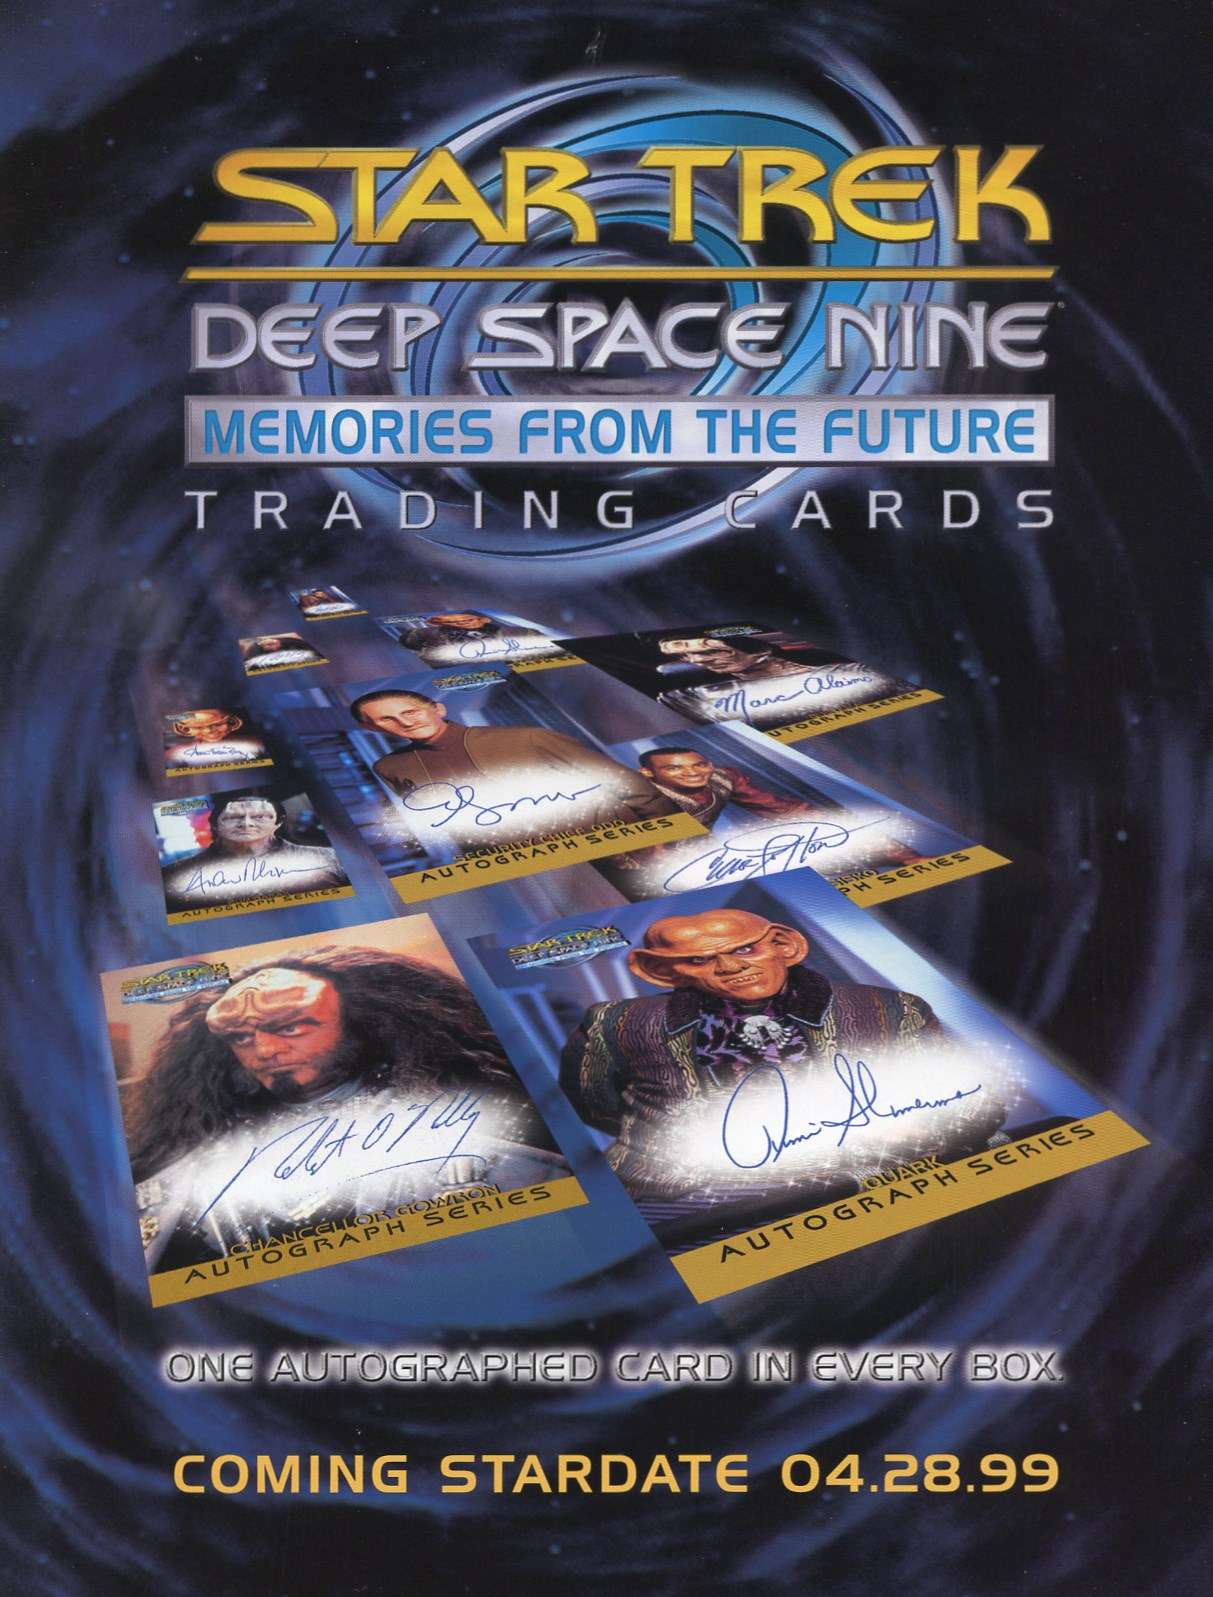 DS9 Memories from the Future Sell Sheet Front